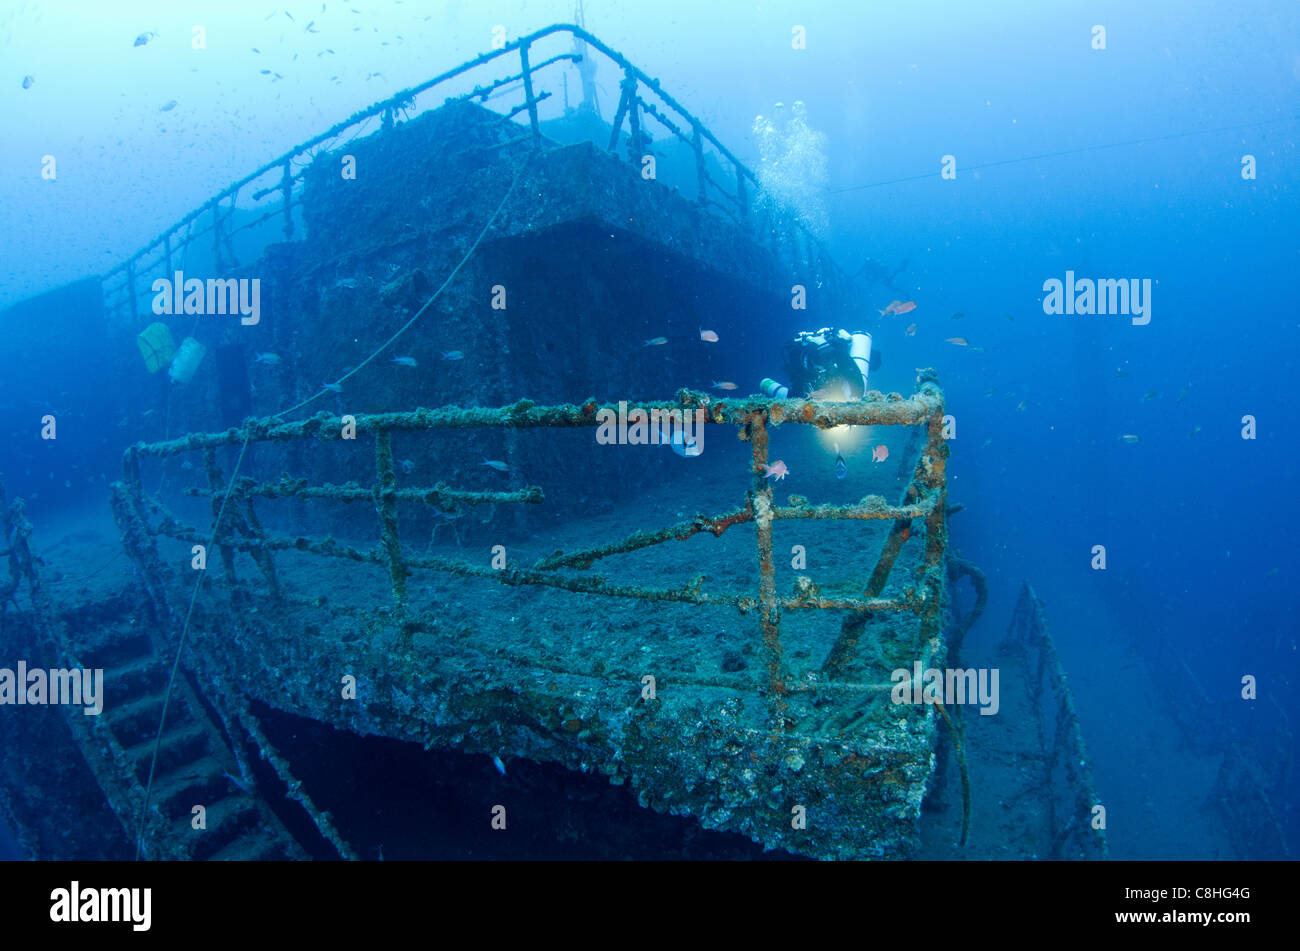 Wreck of haven amoco milford haven tanker arenzano liguria italy stock photo royalty free - Tech dive arenzano ...